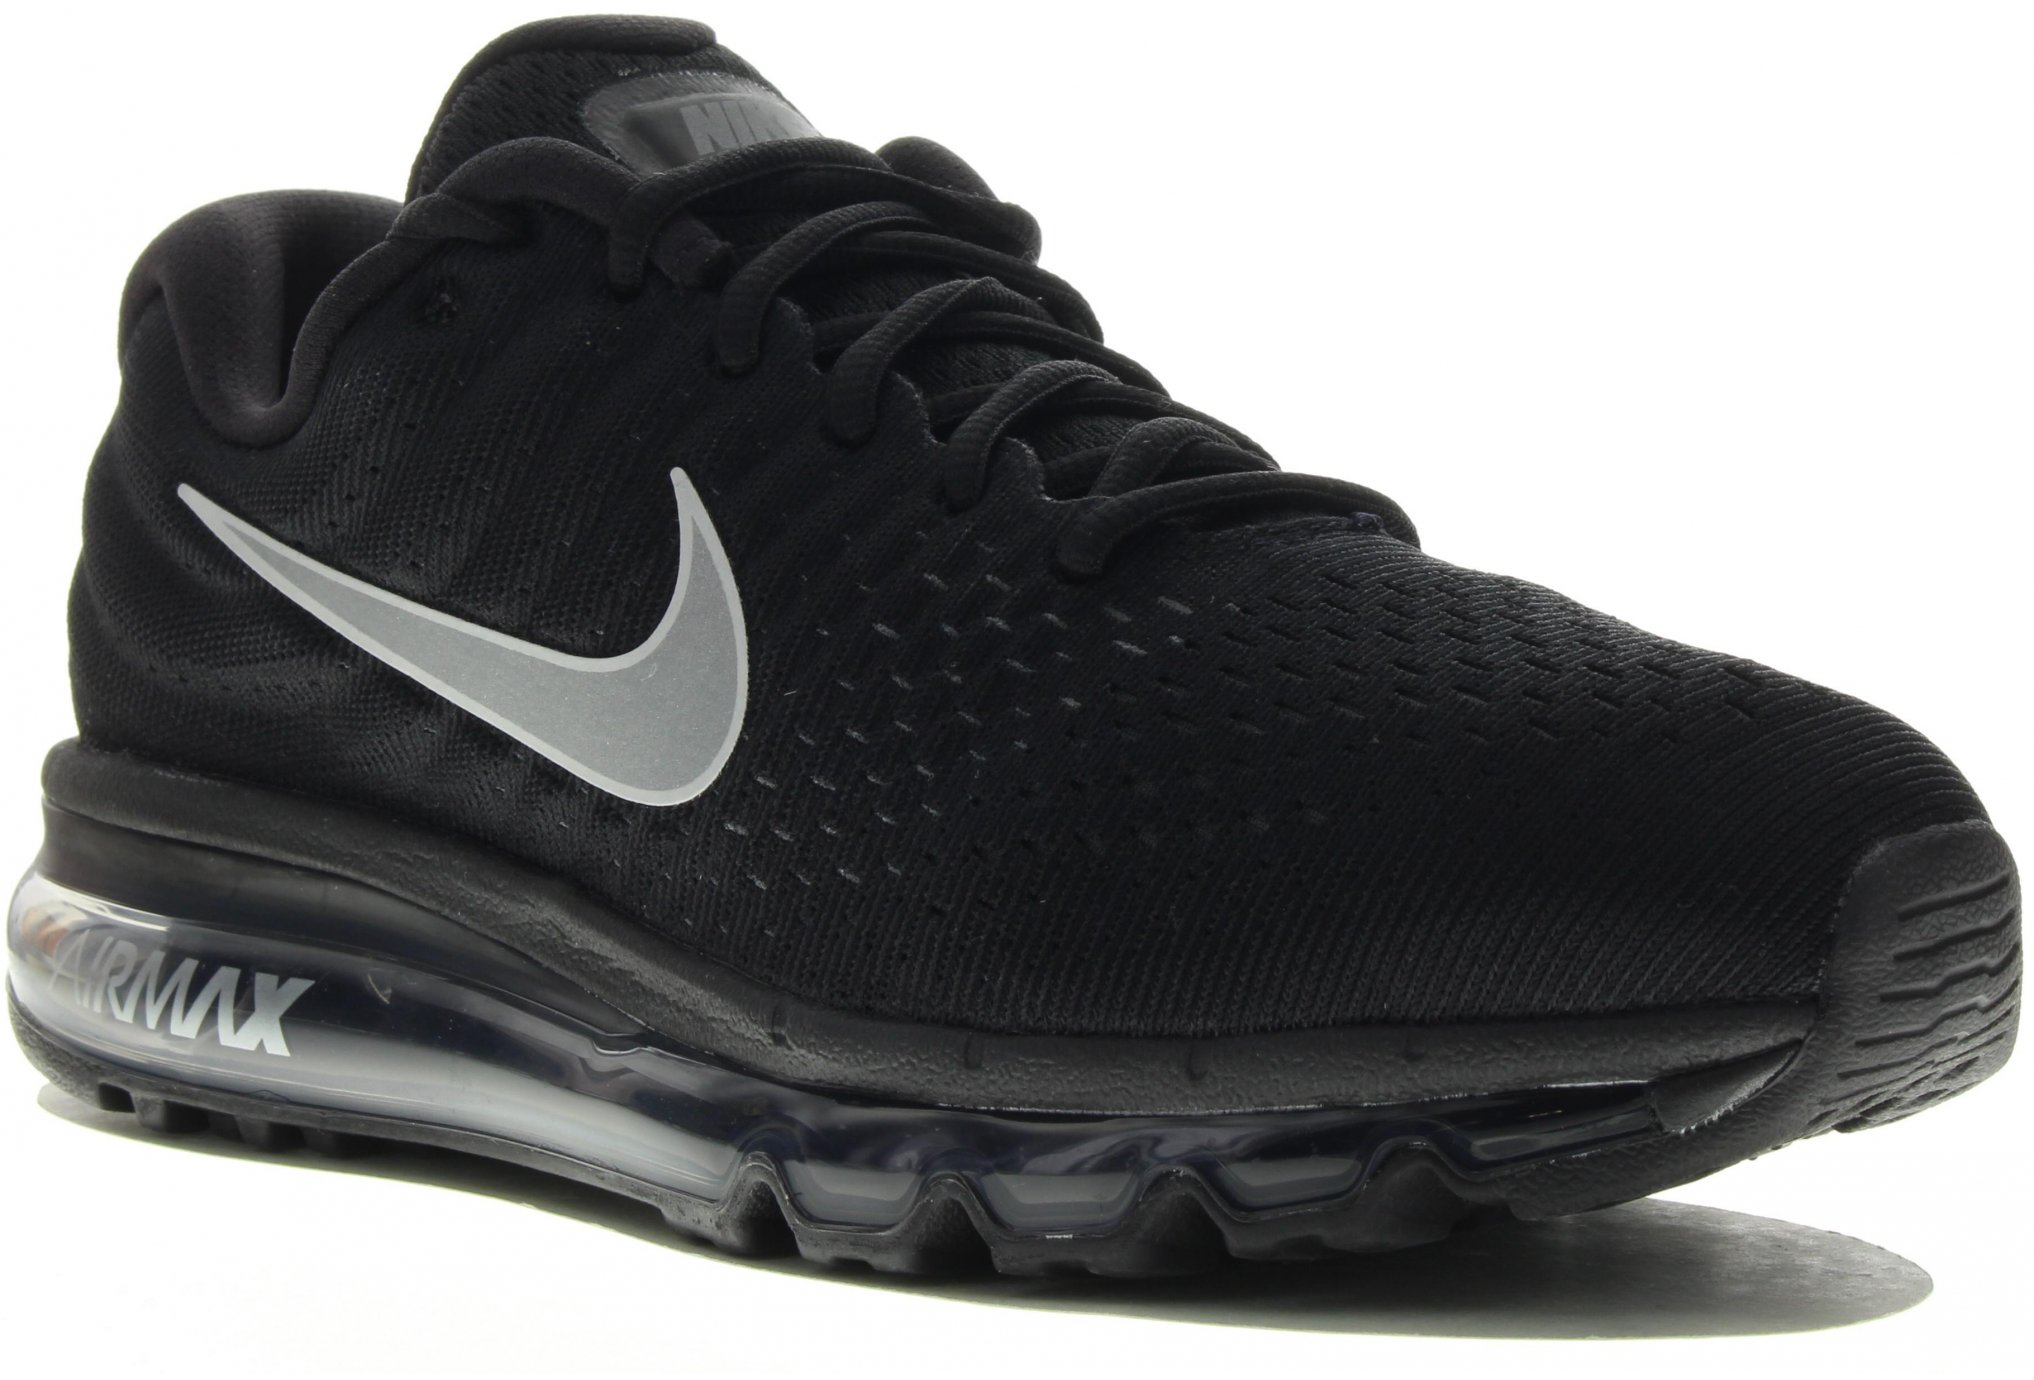 Nike Low De Zoom All 2Chaussures Out R USMVpz